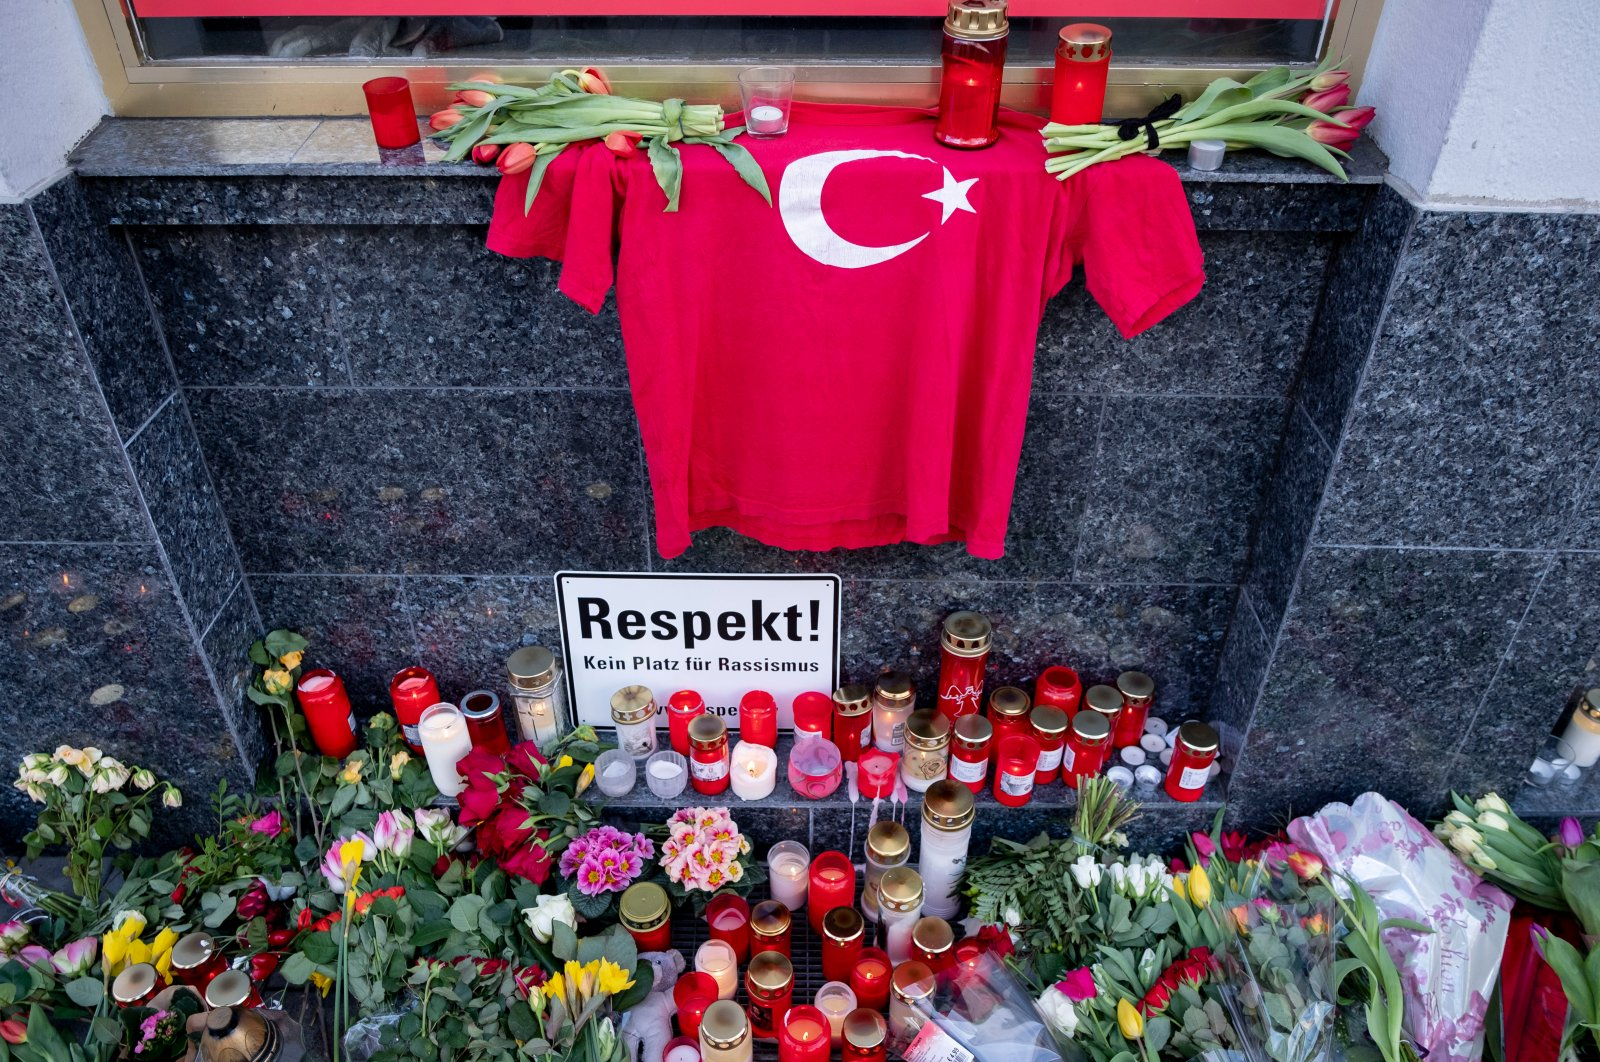 Flowers, candles and a Turkish jersey are laid near a bar in central Hanau, Germany, Feb. 22, 2020. (AP Photo)